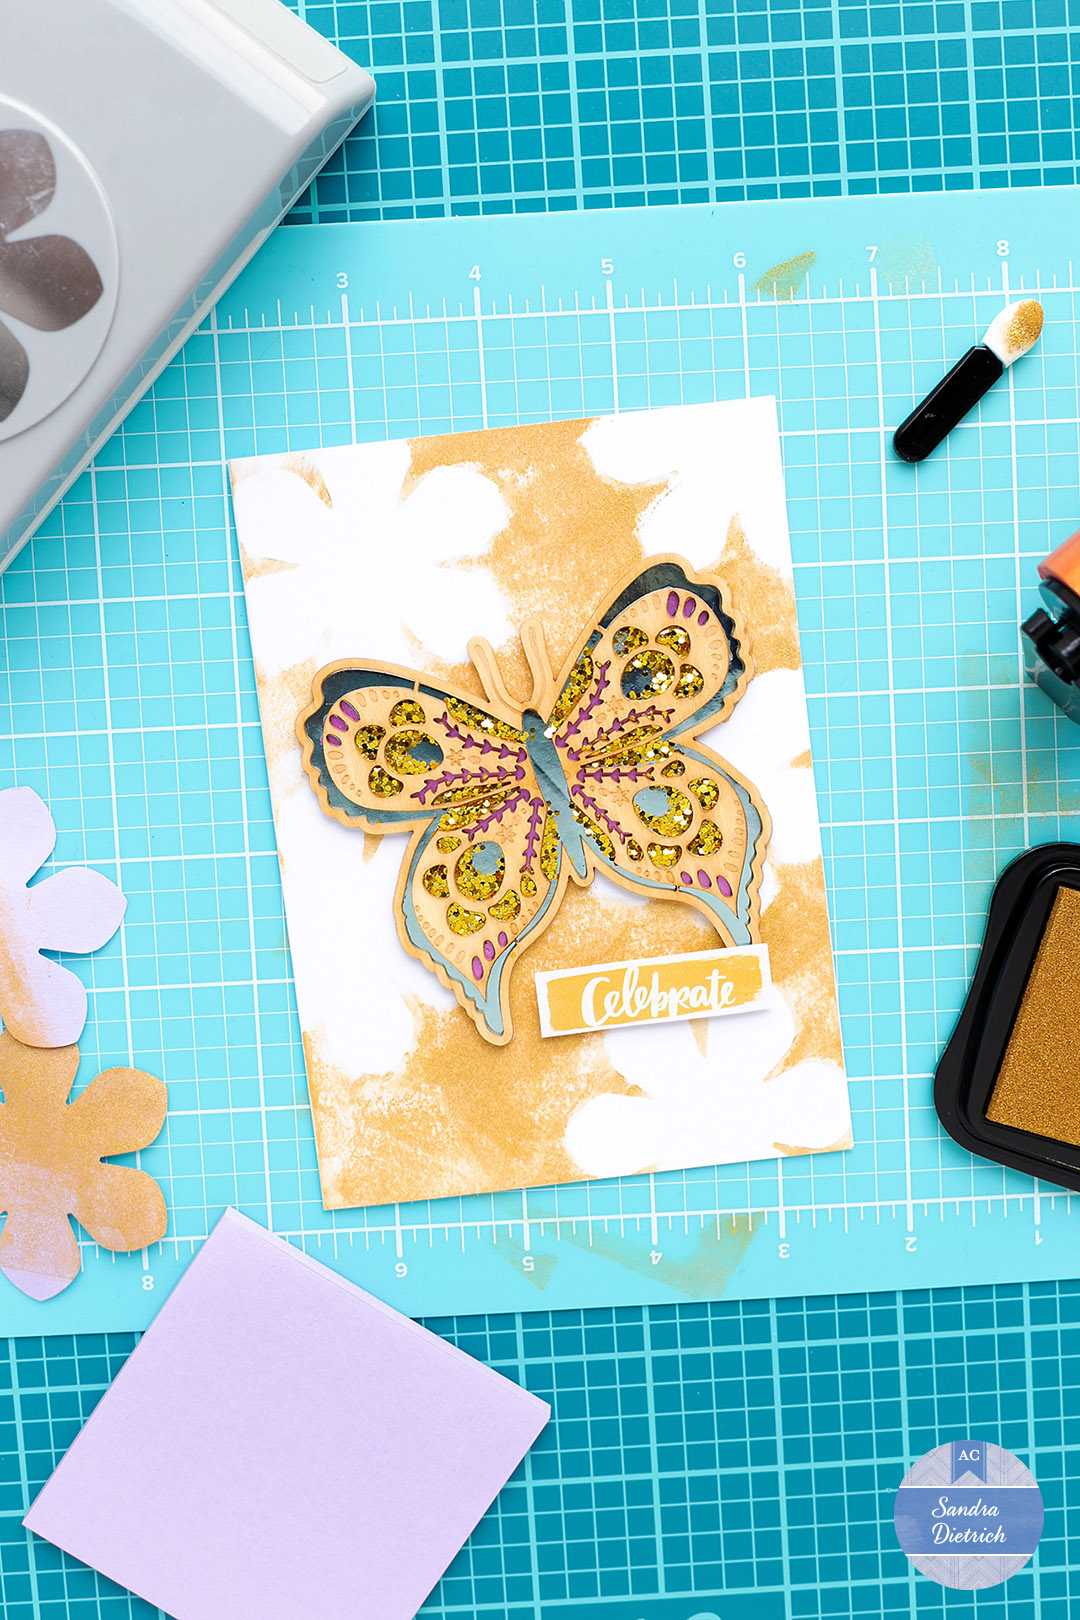 The card is finished. The photo shows the card with a large butterfly embellishment.